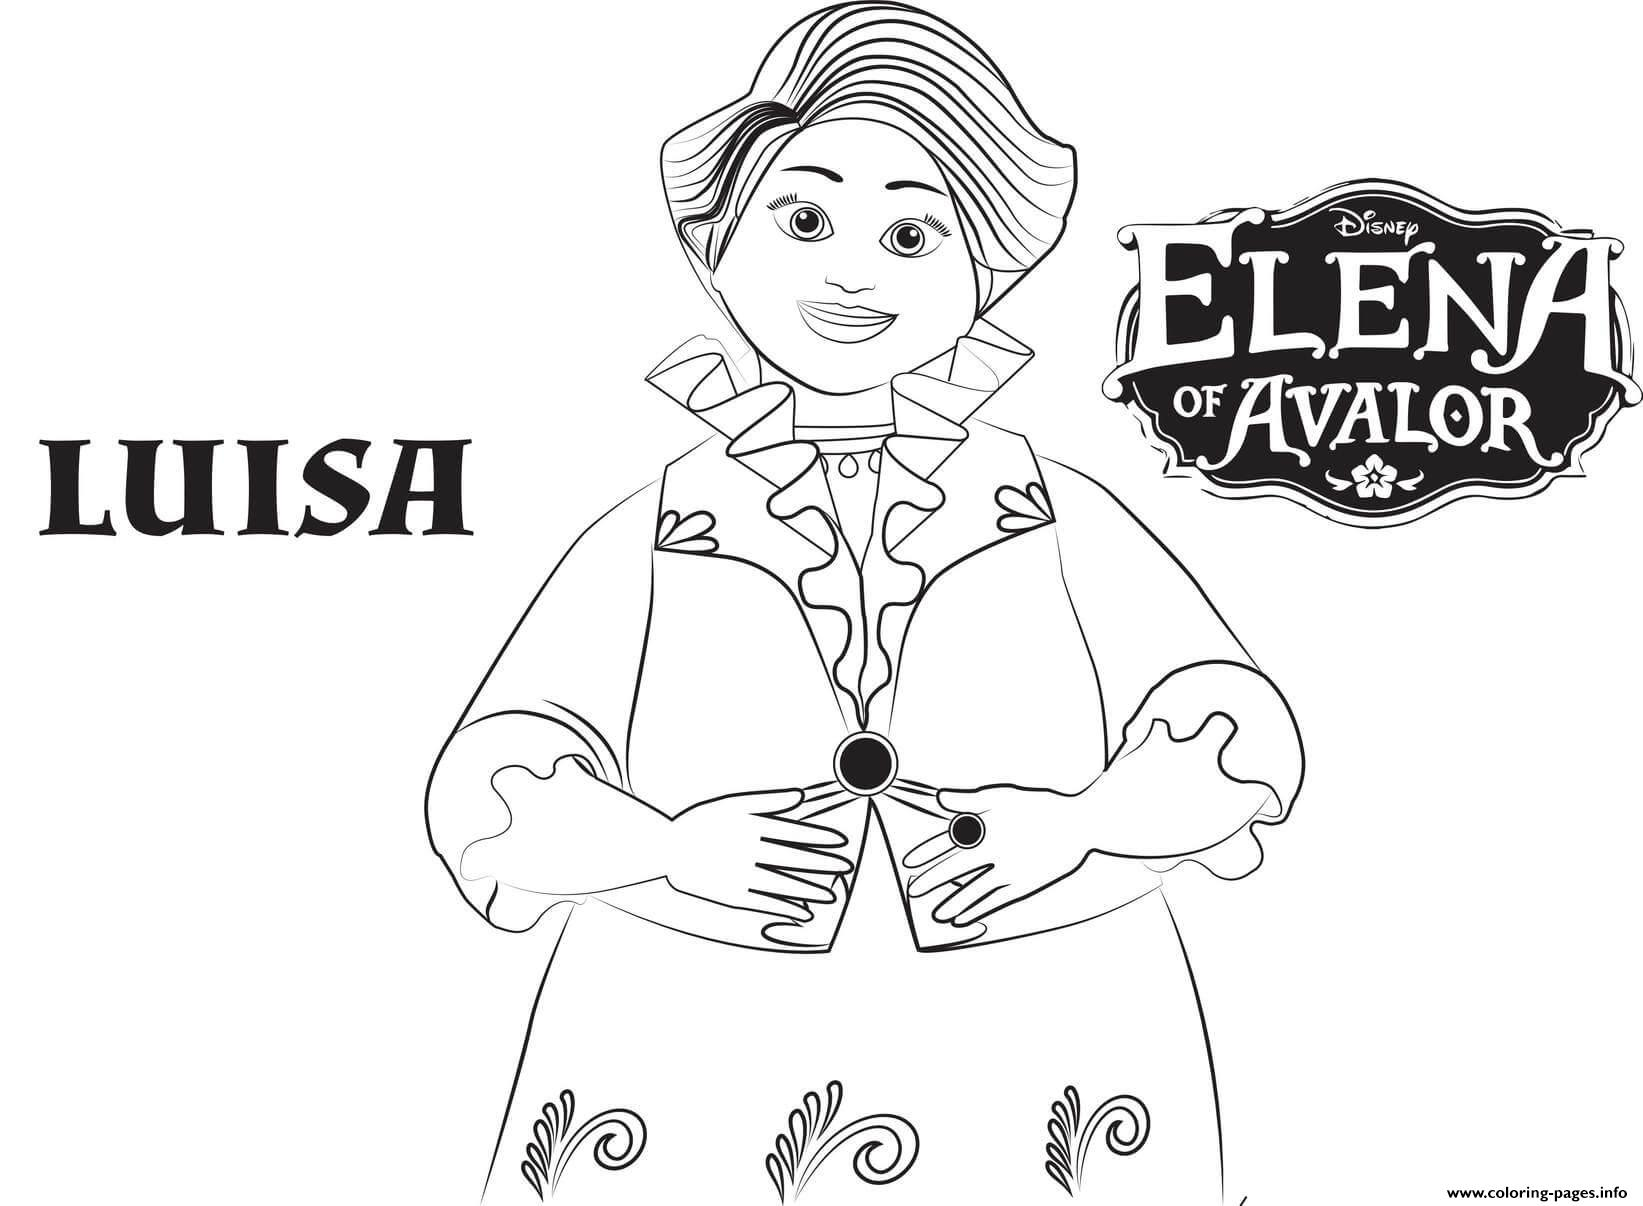 Elena Of Avalor Luisa Disney Coloring